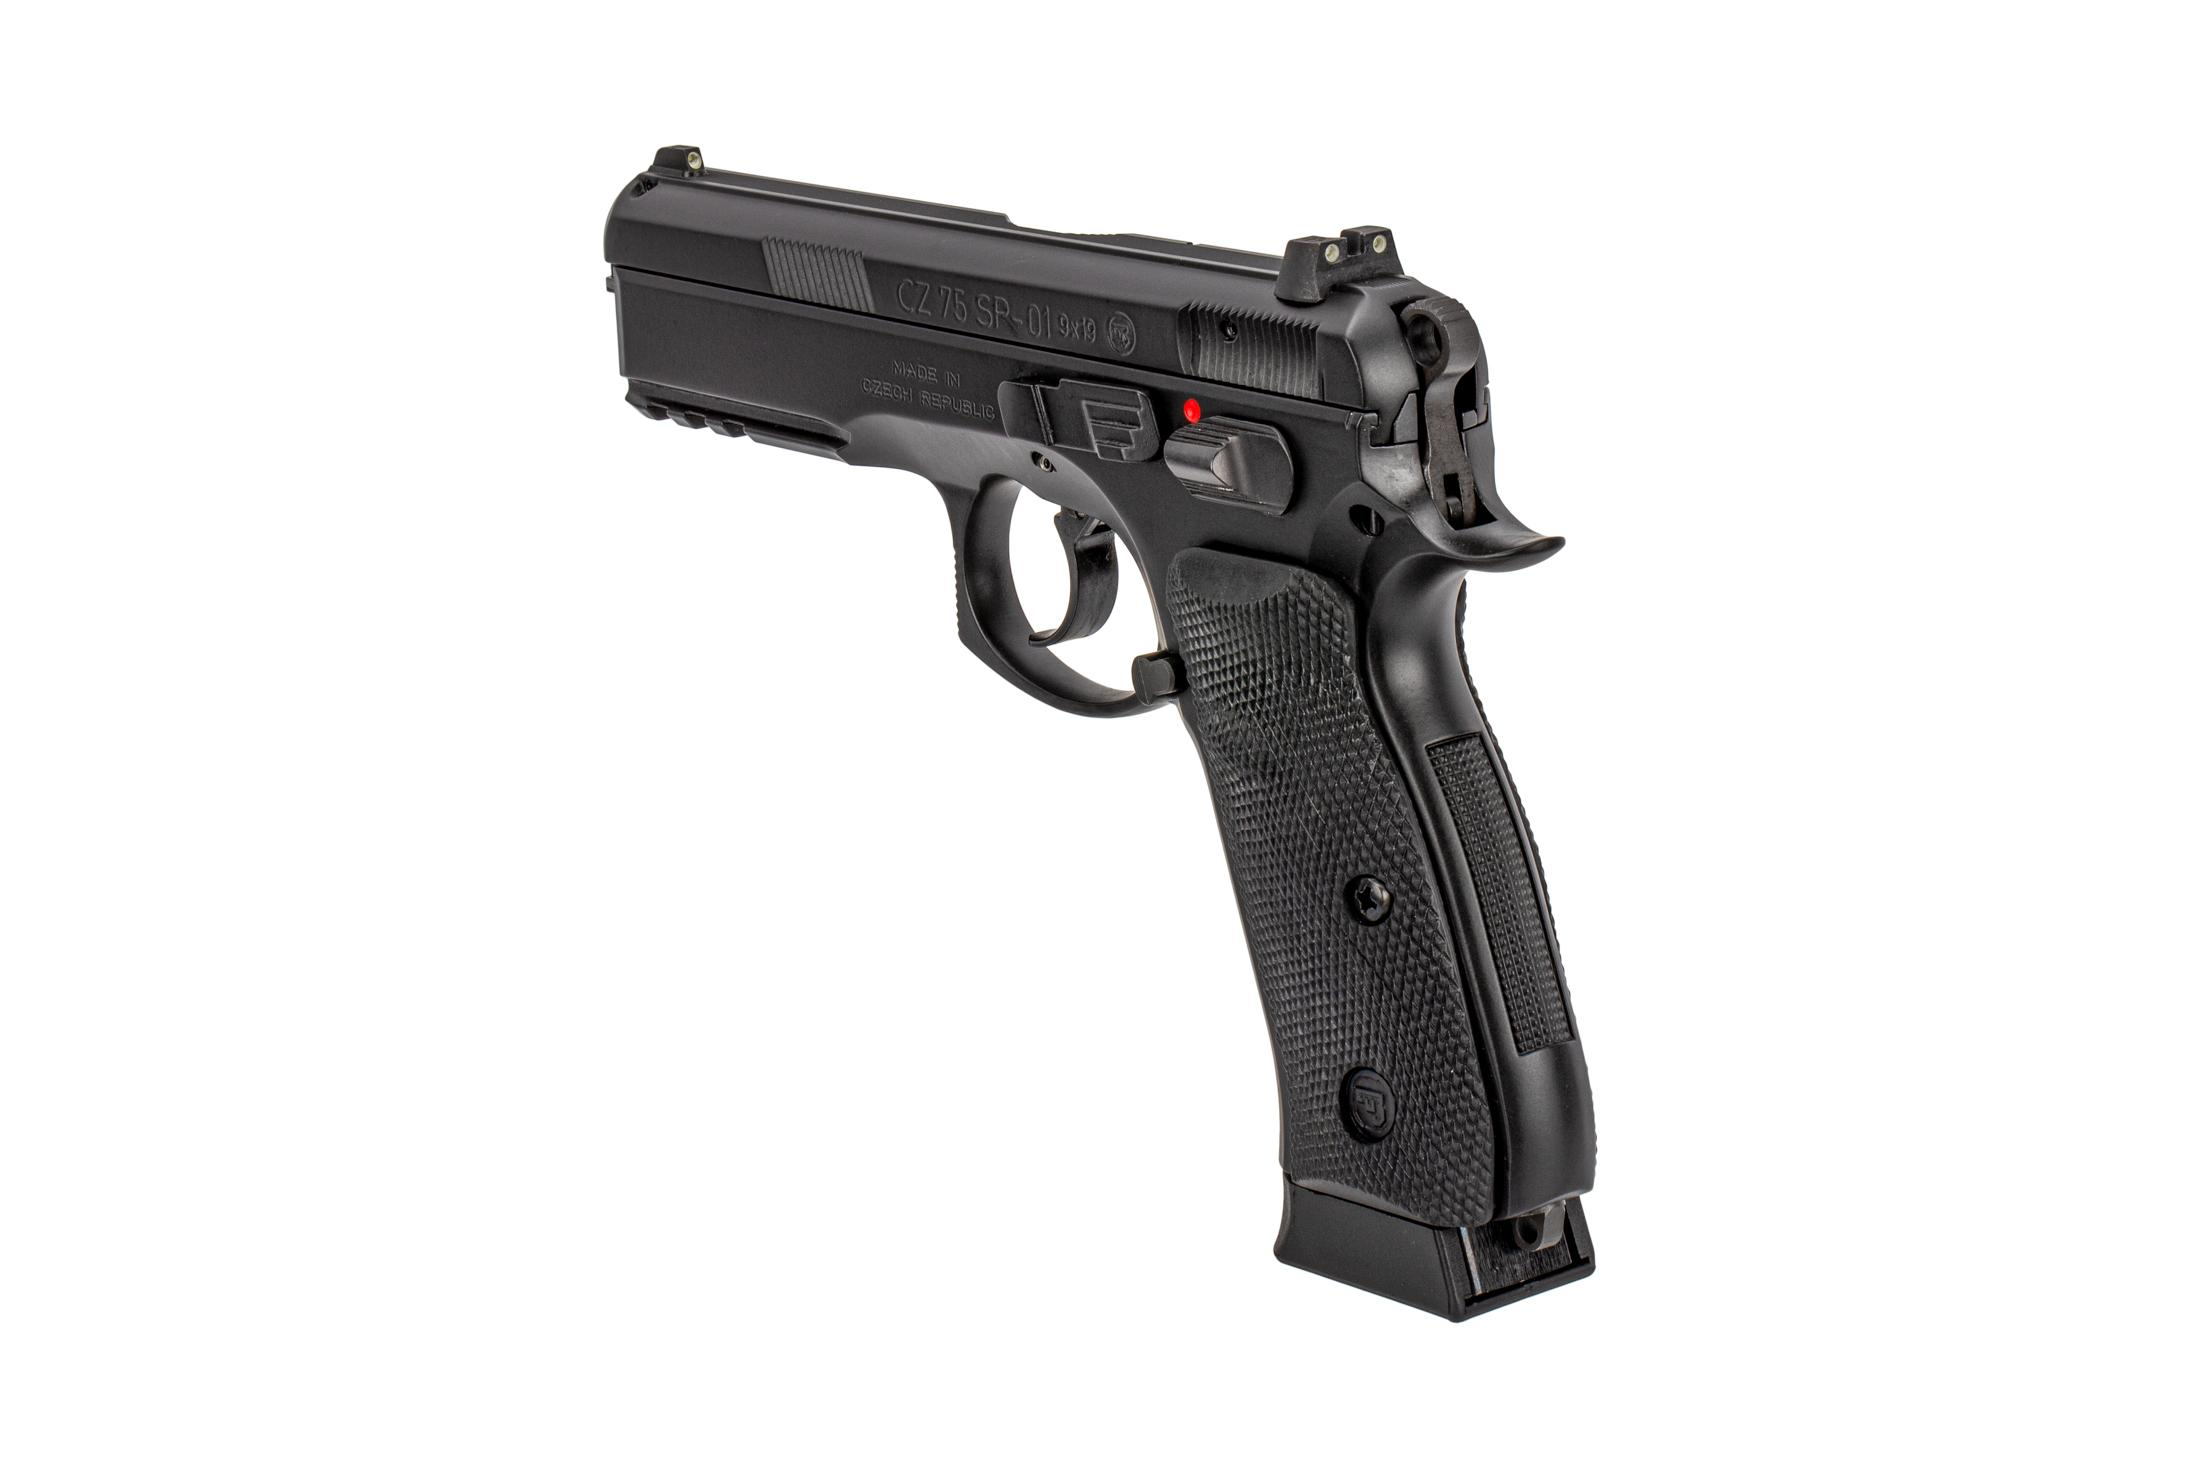 CZ USA 9mm SP-01 pistol with night sights, ambidextrous safety selector, and ergonomic grips.